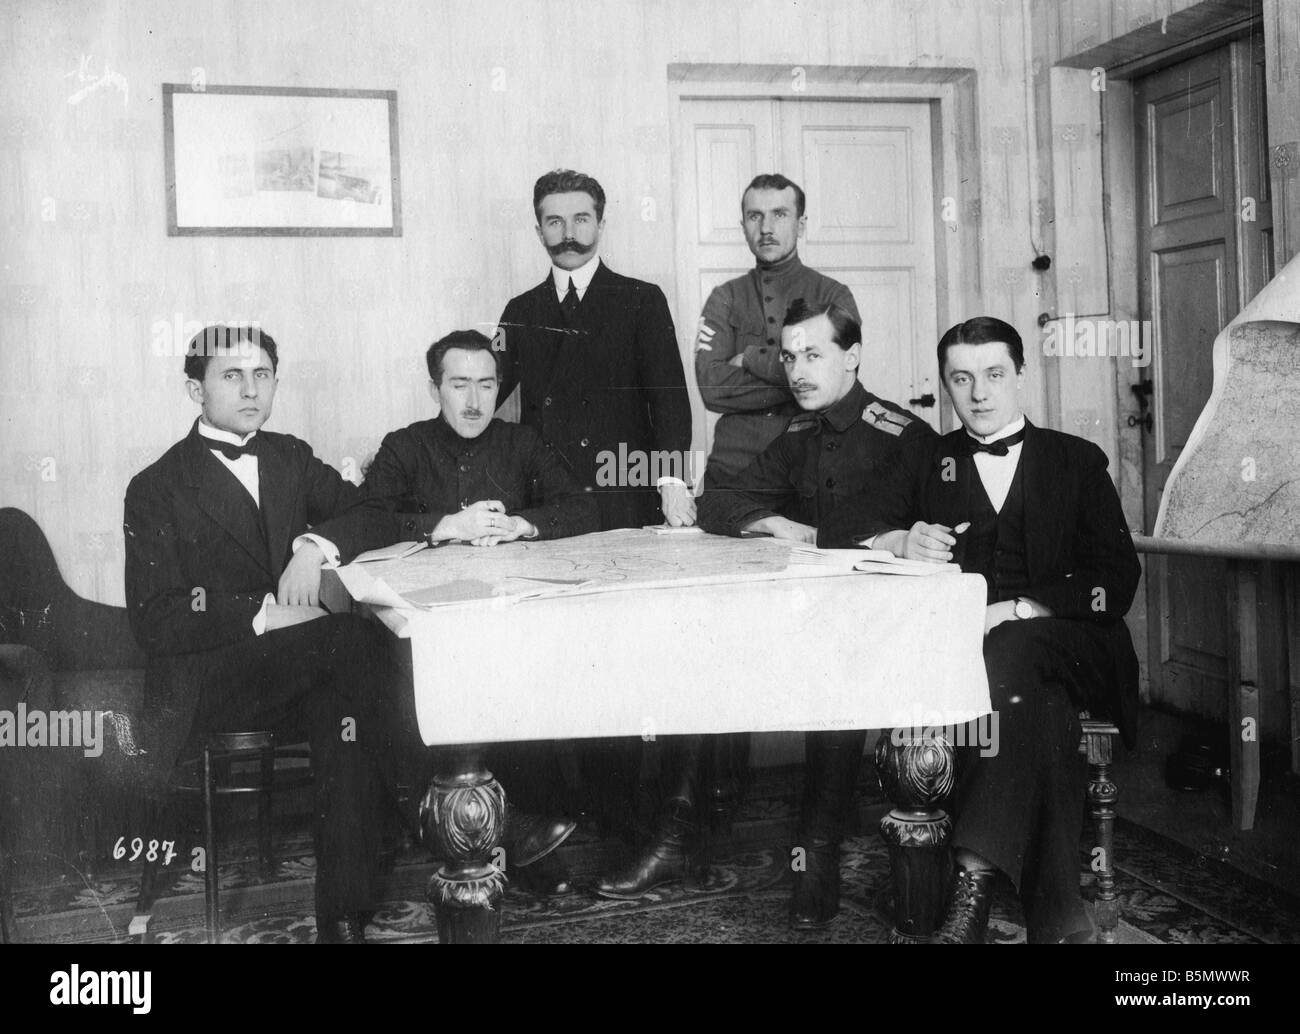 9RD 1918 2 9 A1 Ukrainian Delegation 1918 1 Weltkrieg 1914 18 Peace negotiations in Brest Litowsk and separate peace - Stock Image